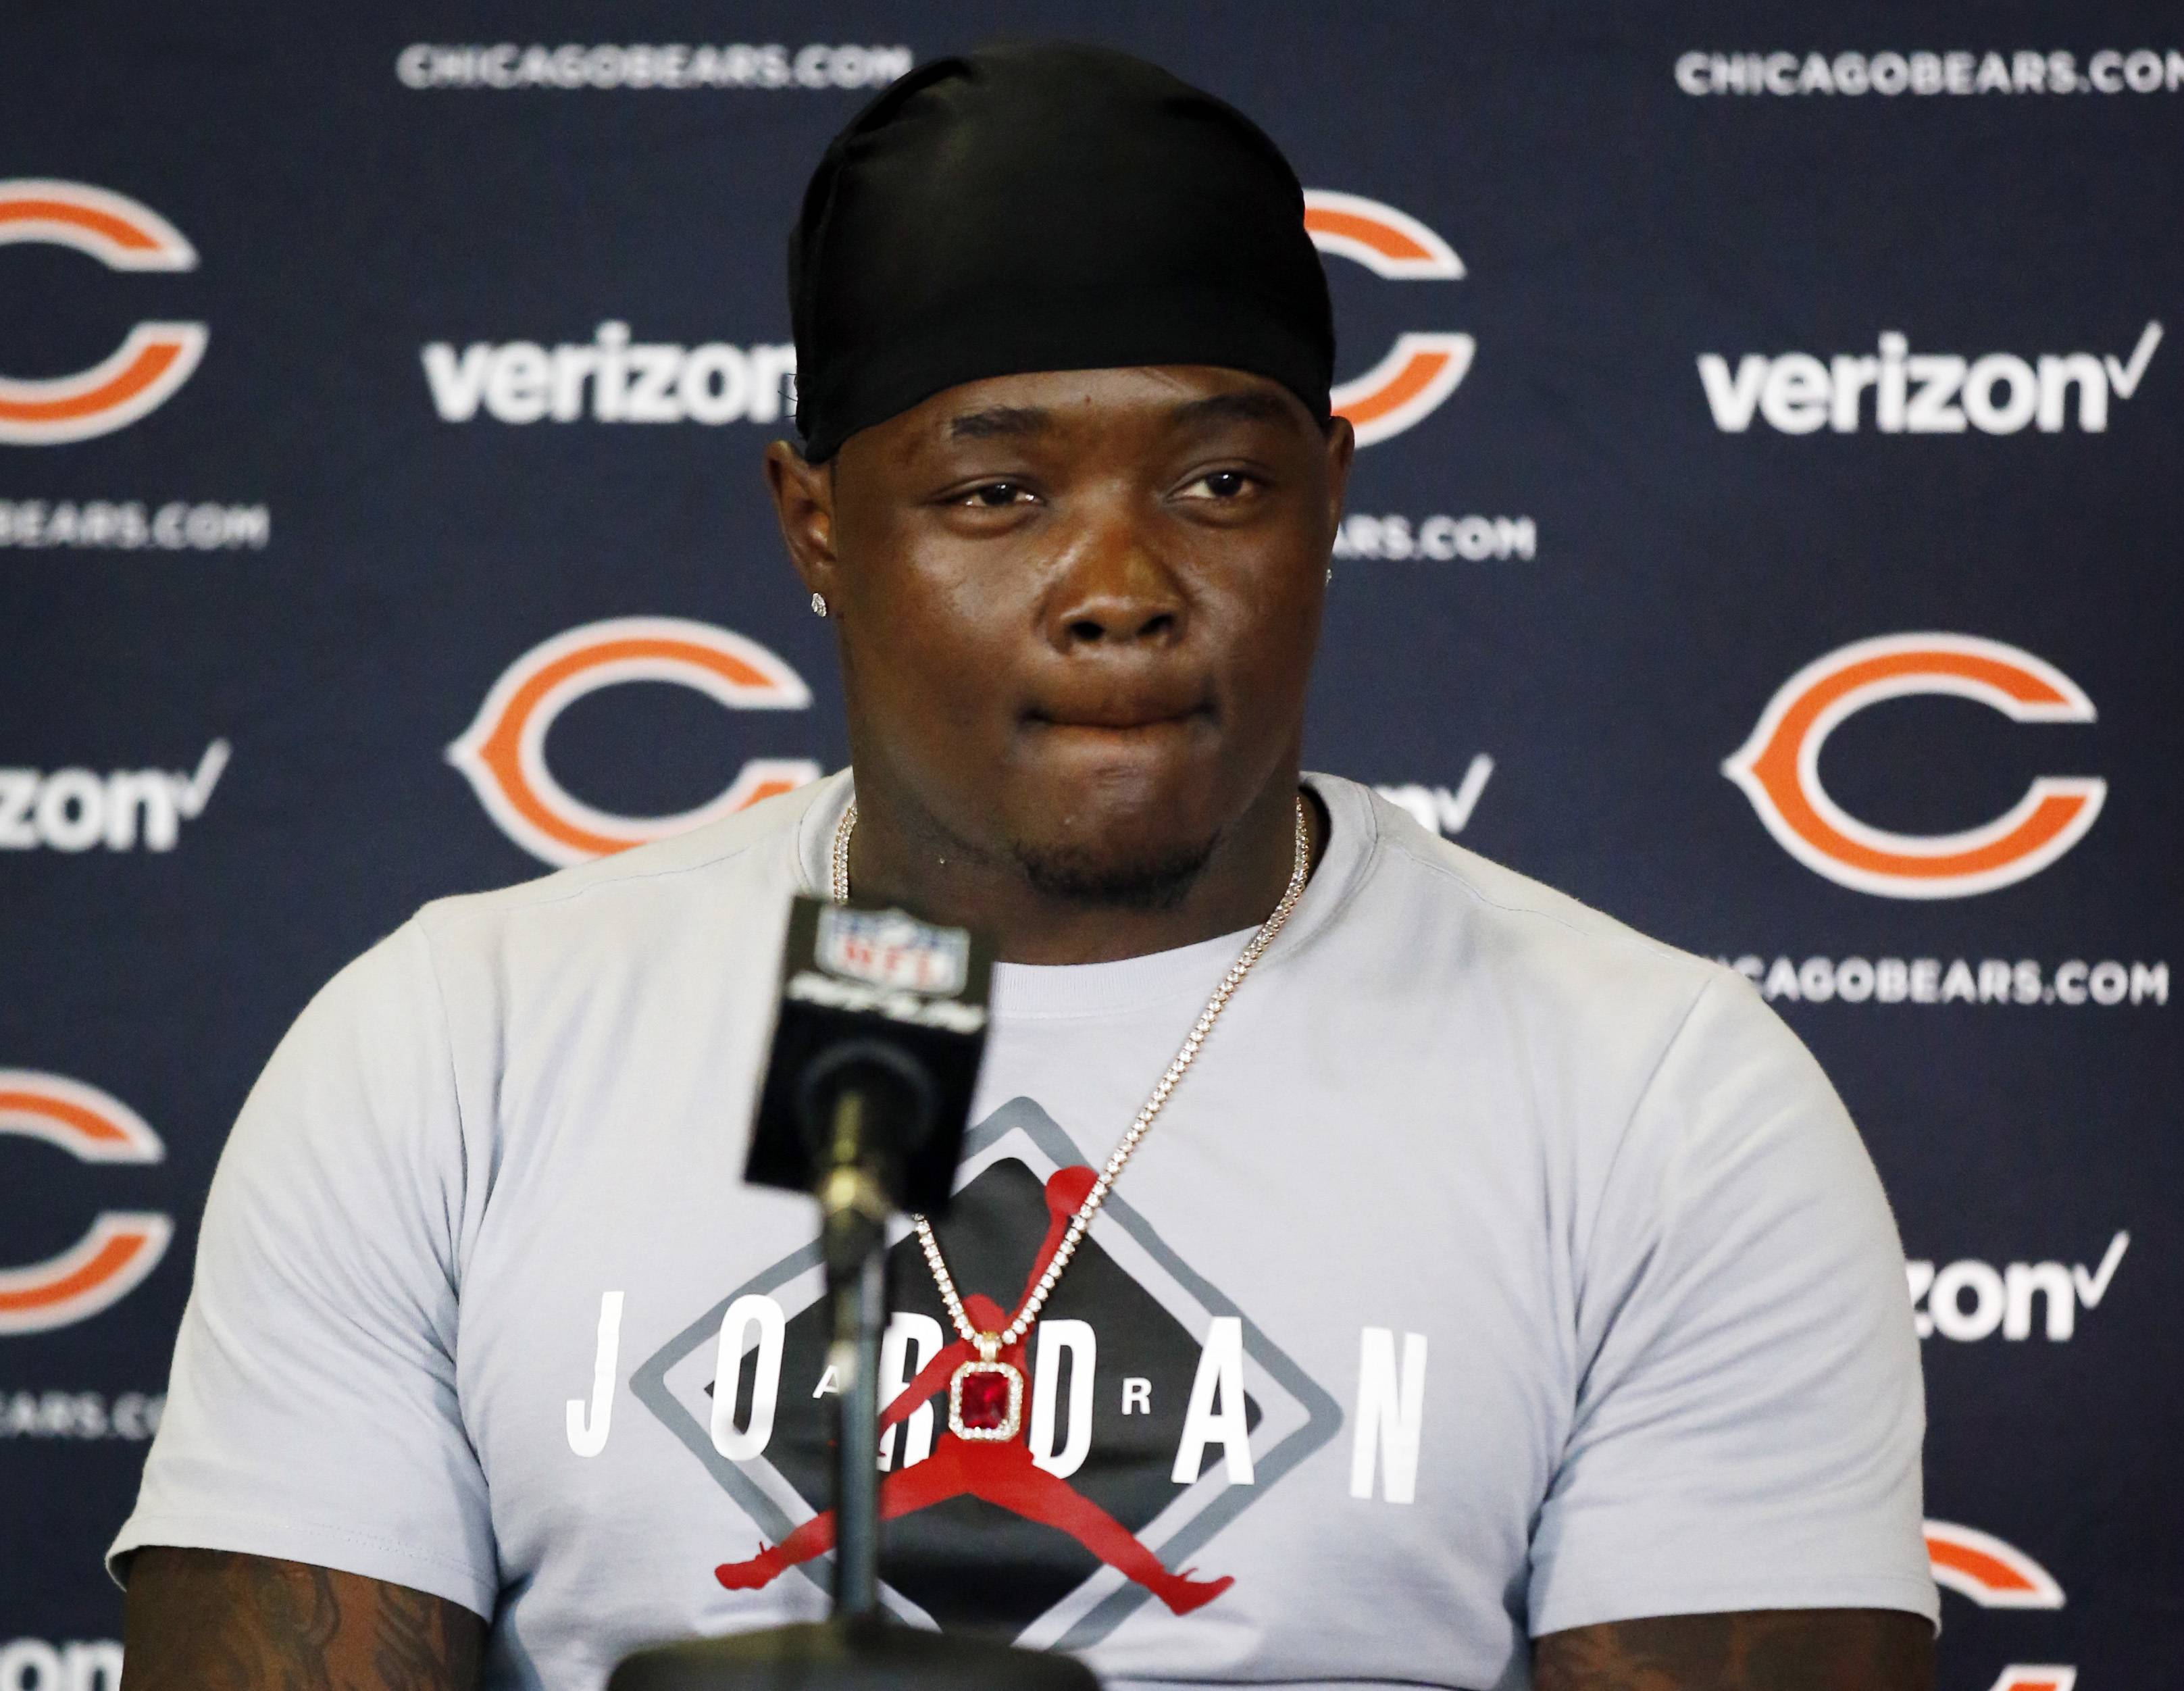 "Chicago Bears linebacker Danny Trevathan said Monday he's more concerned with how the team will bounce back from an 0-3 preseason start than the actual preseason. ""It's preseason, and I know all that, but collectively I want to see us play a little better and put together a great start and a great finish at the same time,"" he said."